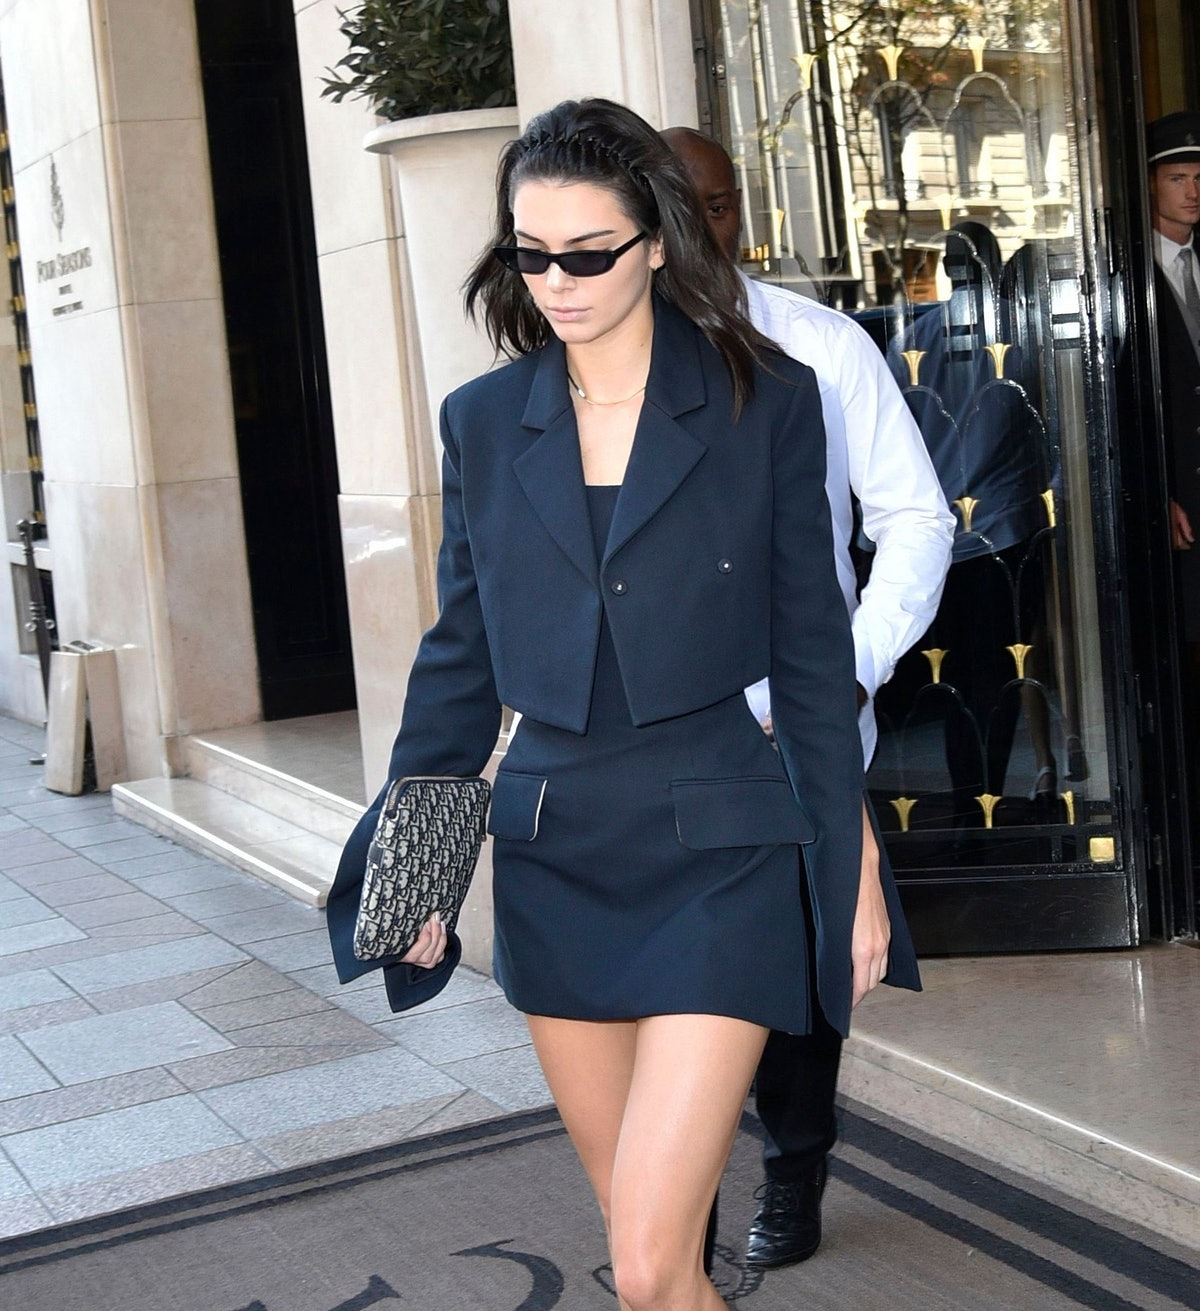 Kendall Jenner out and about, Paris Fashion Week, France - 27 Sep 2018